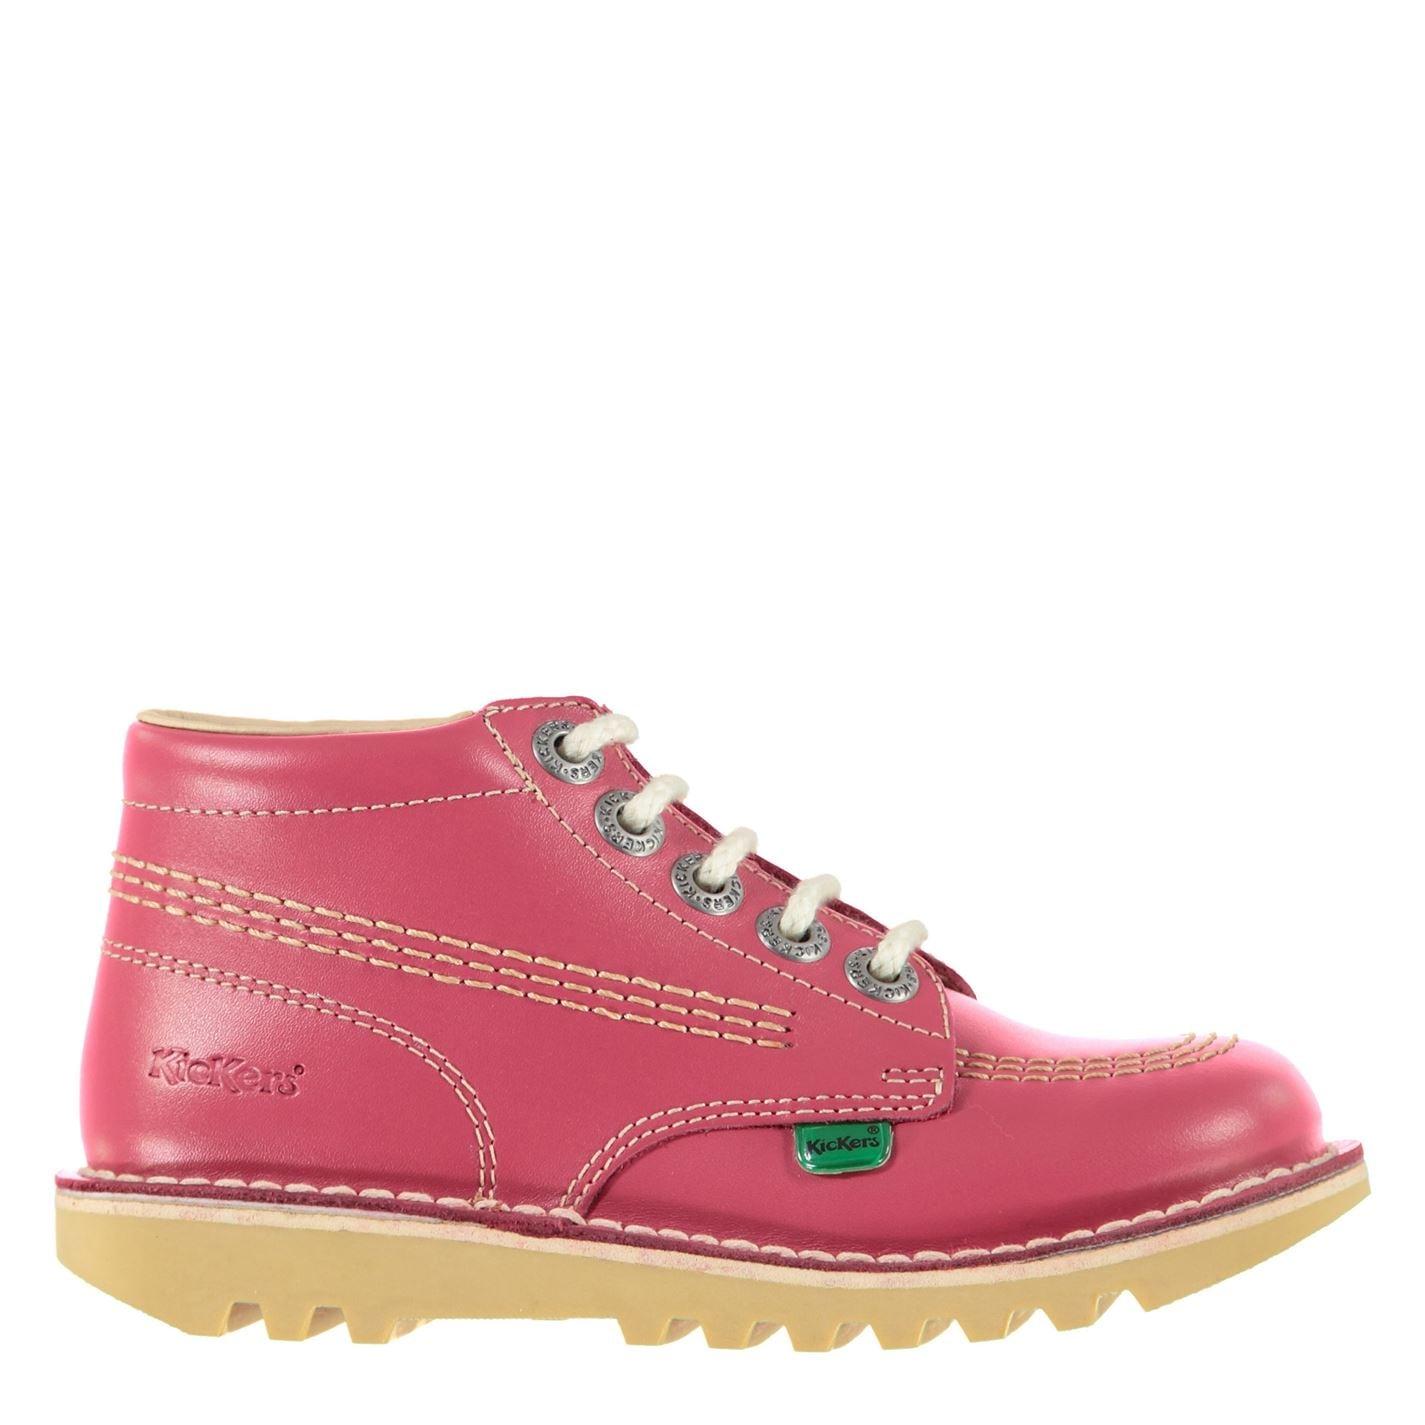 Kickers Kickers Childrens Hi Boots Pink Leather